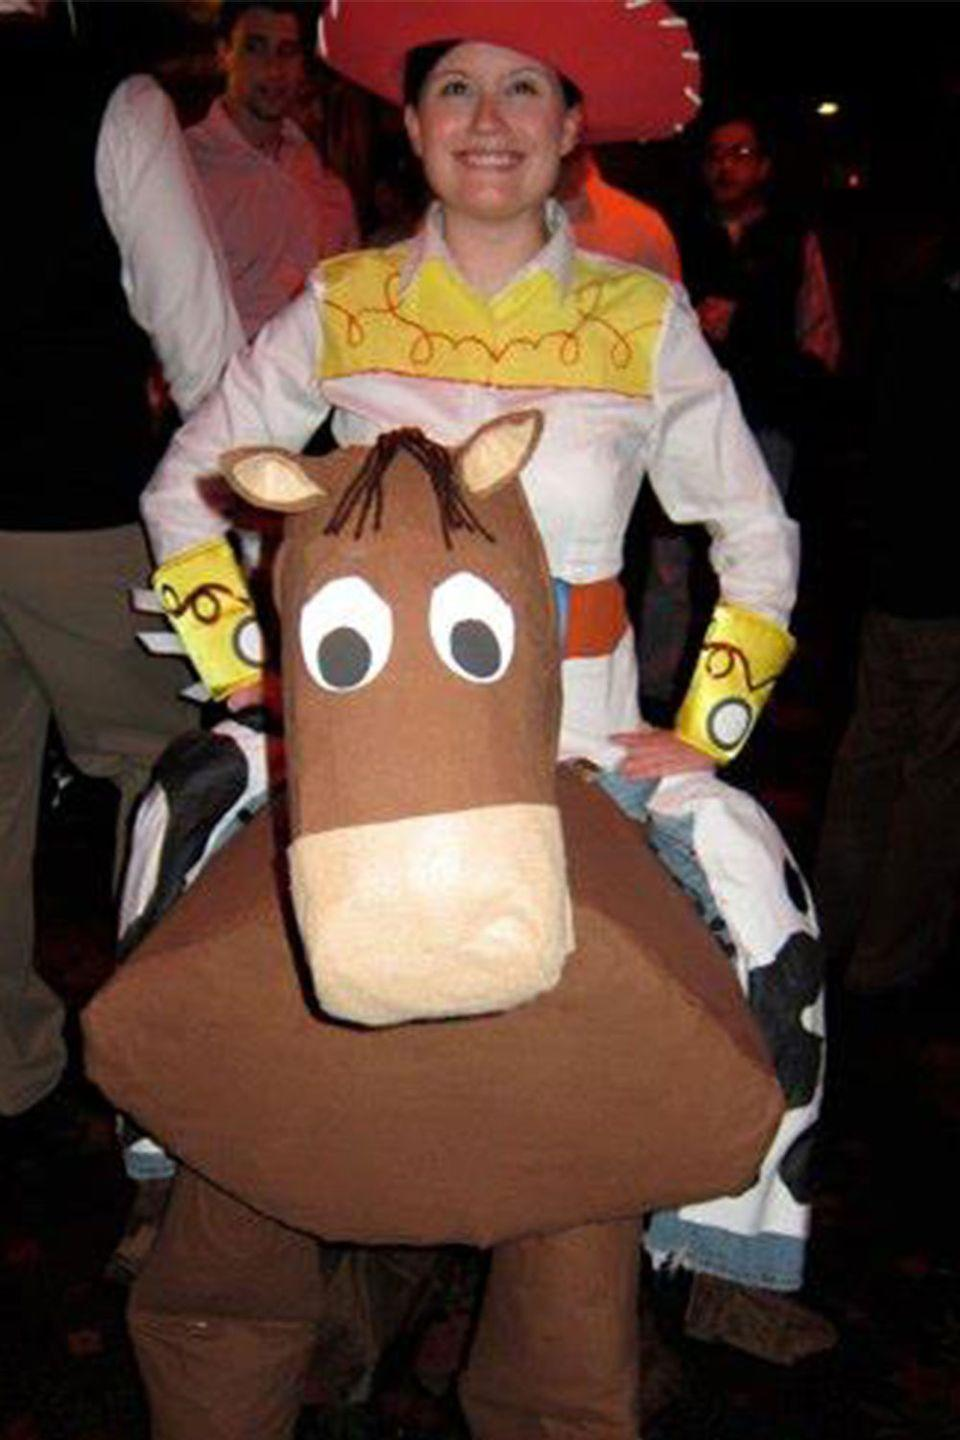 "<p>Most <a href=""https://www.amazon.com/Disguise-Toy-Story-Woody-Costume/dp/B00004Y6CZ?tag=syn-yahoo-20&ascsubtag=%5Bartid%7C10055.g.23653854%5Bsrc%7Cyahoo-us"" rel=""nofollow noopener"" target=""_blank"" data-ylk=""slk:Toy Story costumes"" class=""link rapid-noclick-resp""><em>Toy Story </em>costumes</a> you see are Buzz and Woody. A homemade ""Jessie riding Bullseye"" outfit deserves some recognition for creativity and originality. </p>"